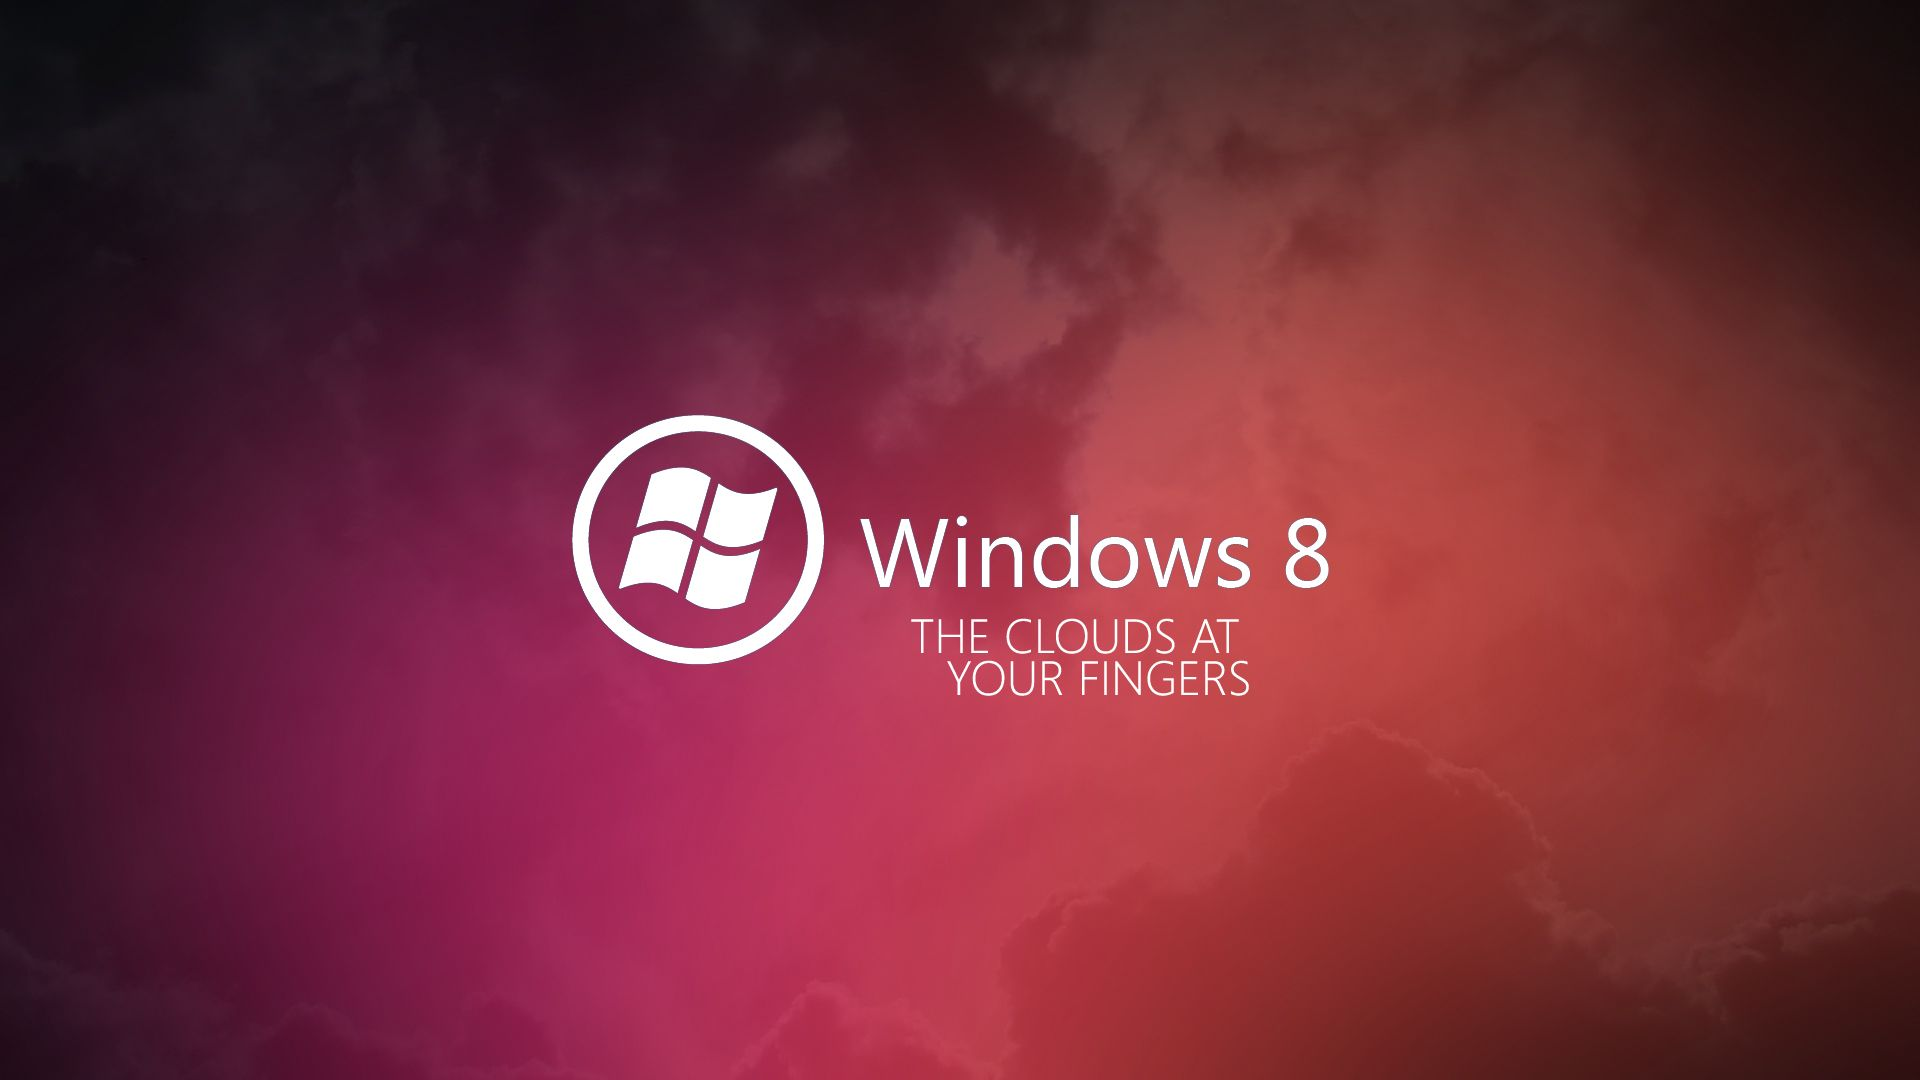 other wallpaper: d desktop windows wallpaper android with high 1920